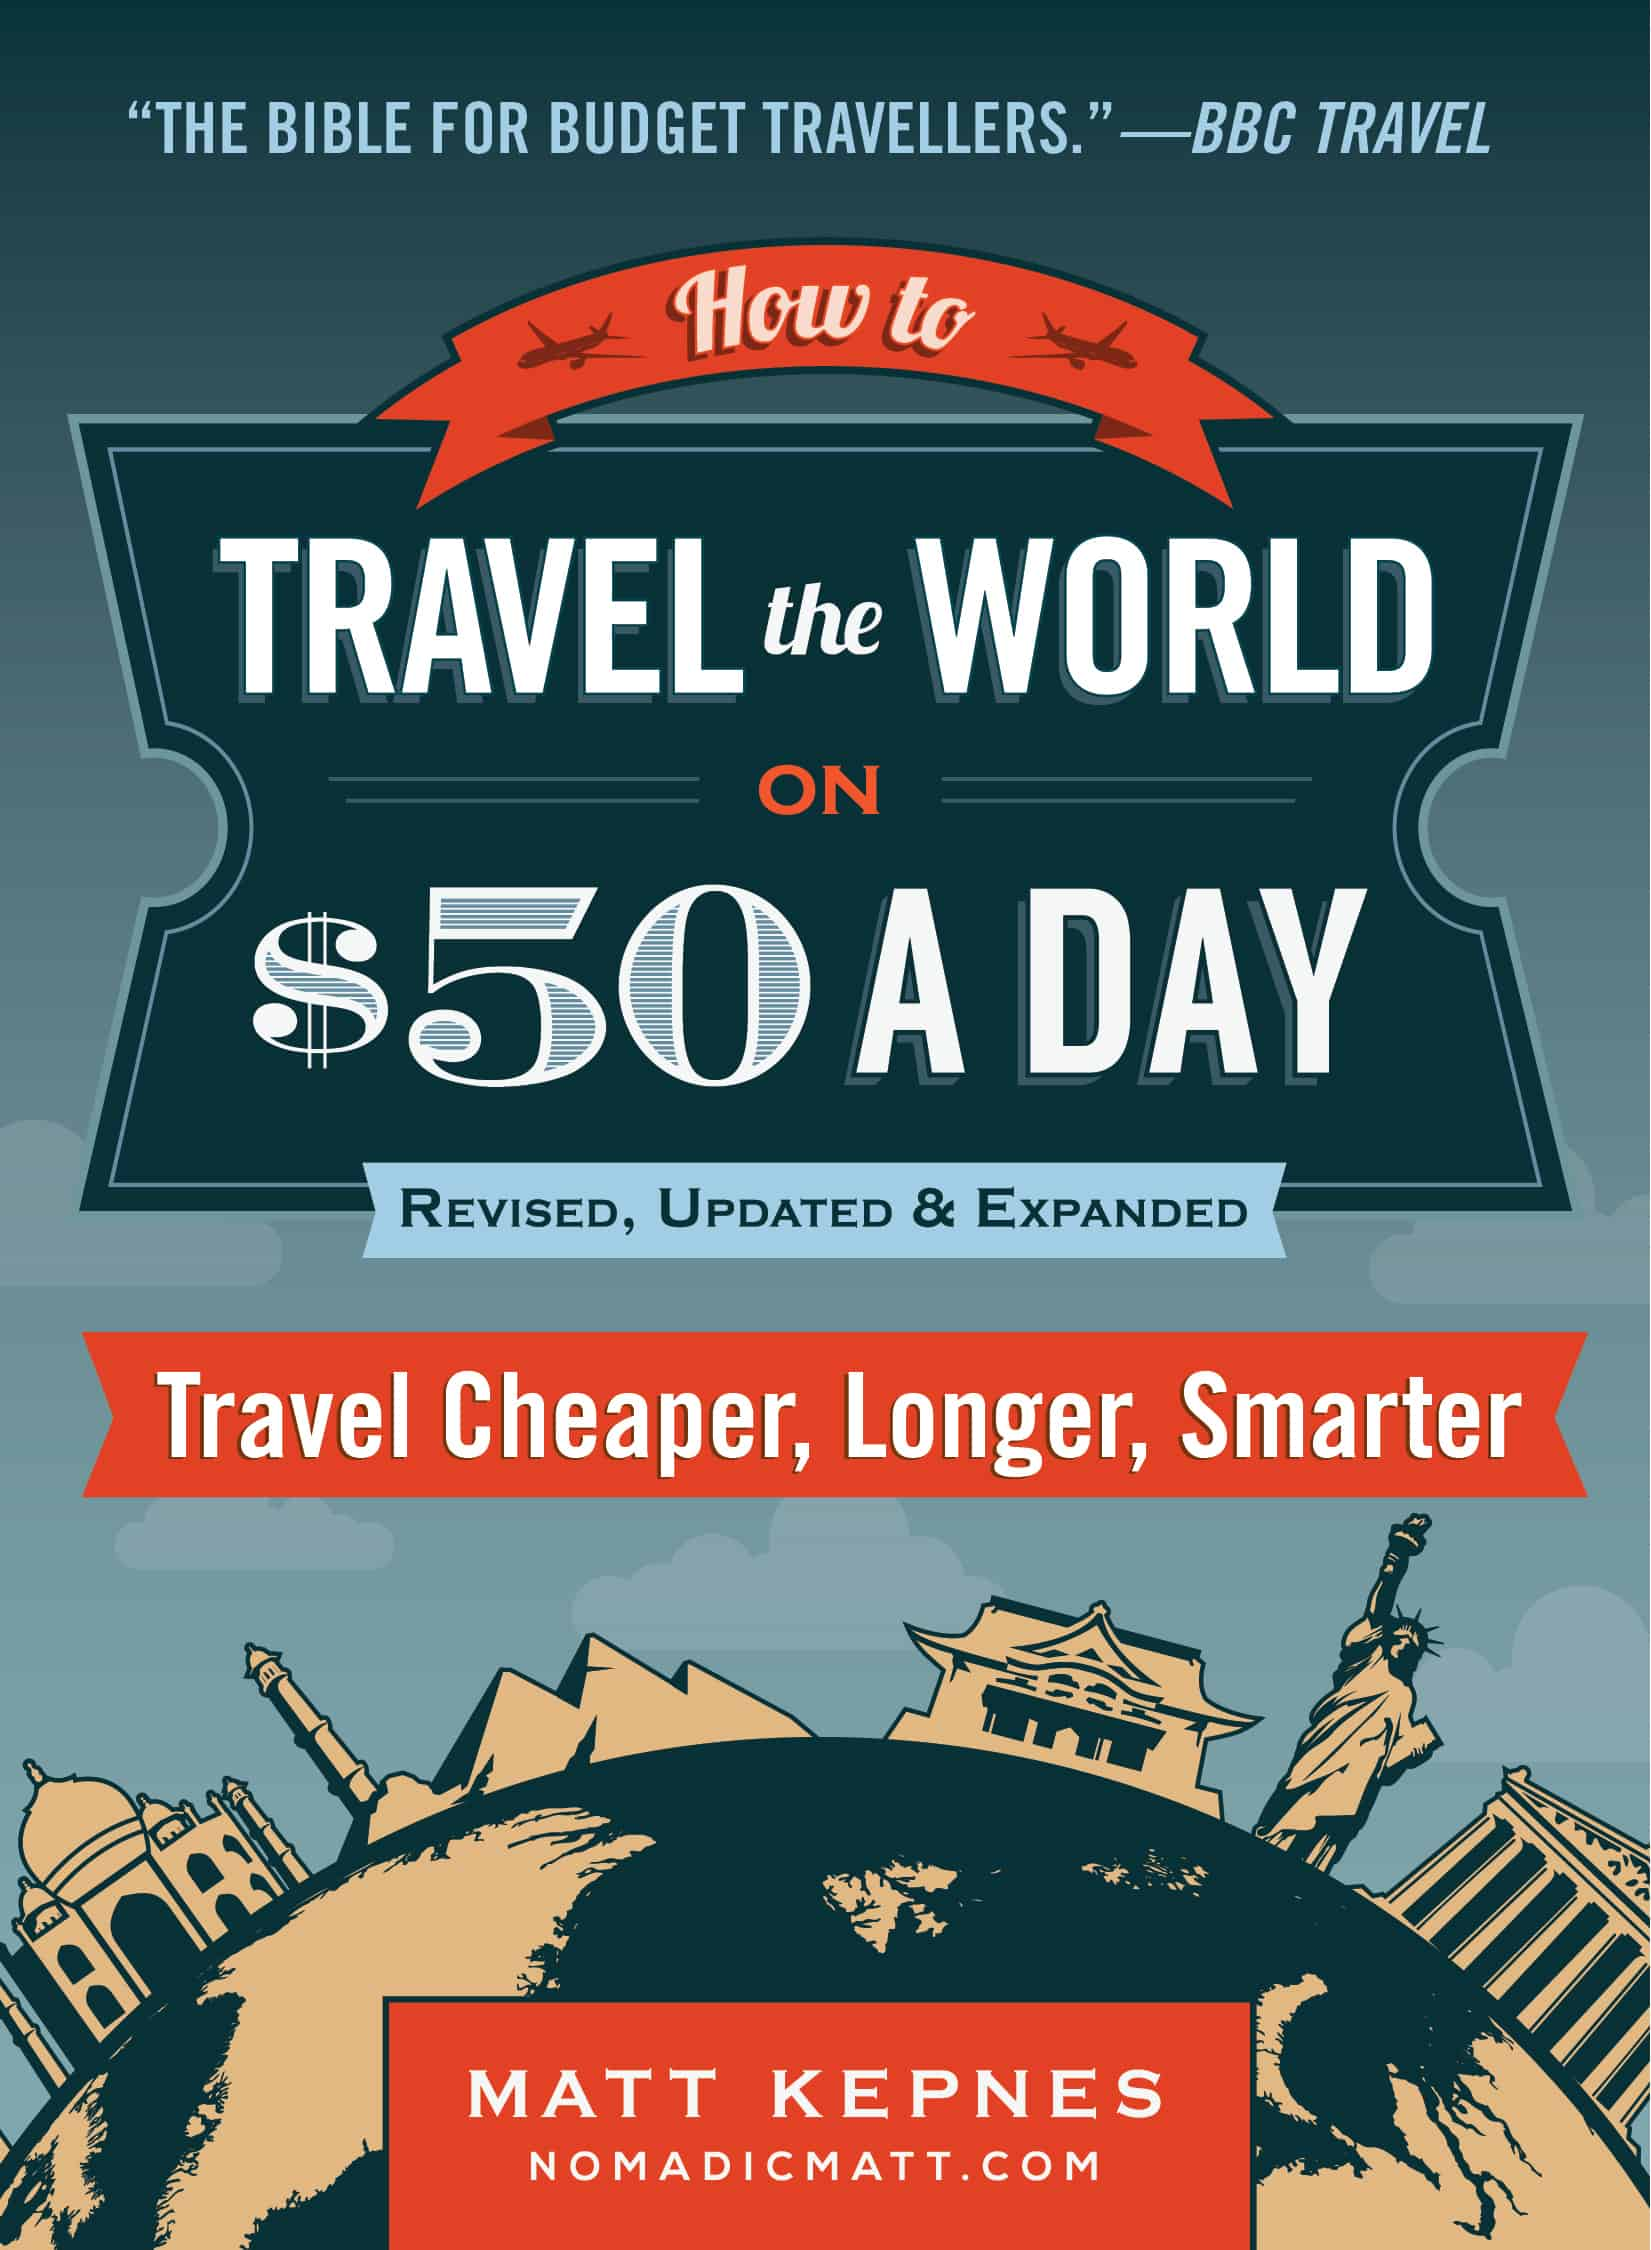 How to Travel the World on $50 a day book cover